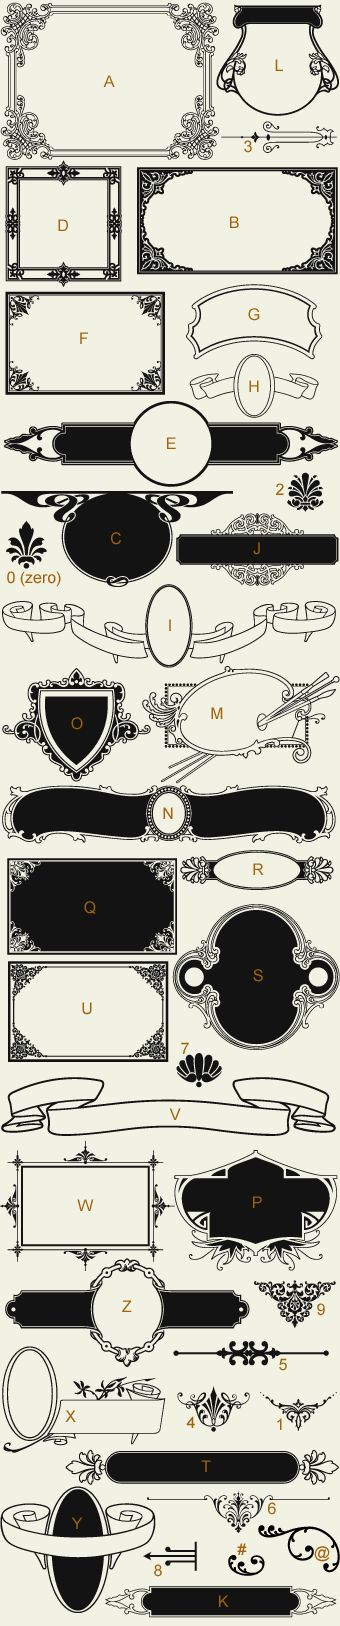 Letterhead Fonts, Frames and Labels ~ LHF Classic Panels 1 / Old Fashioned Panels & Scrolls